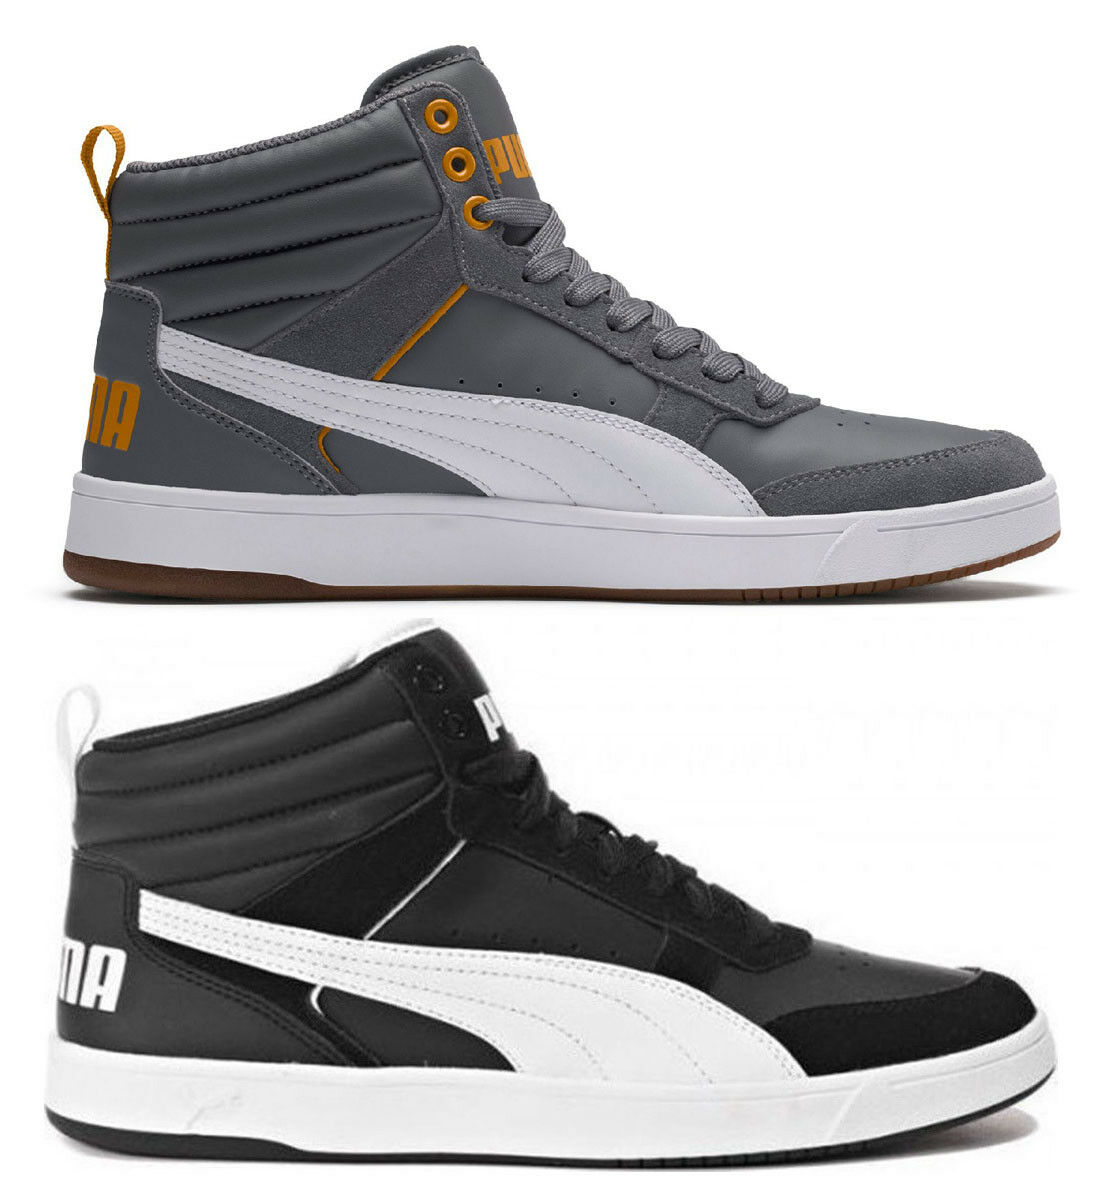 PUMA REBOUND STREET V2 men's shoes sports high sneakers leather suede black